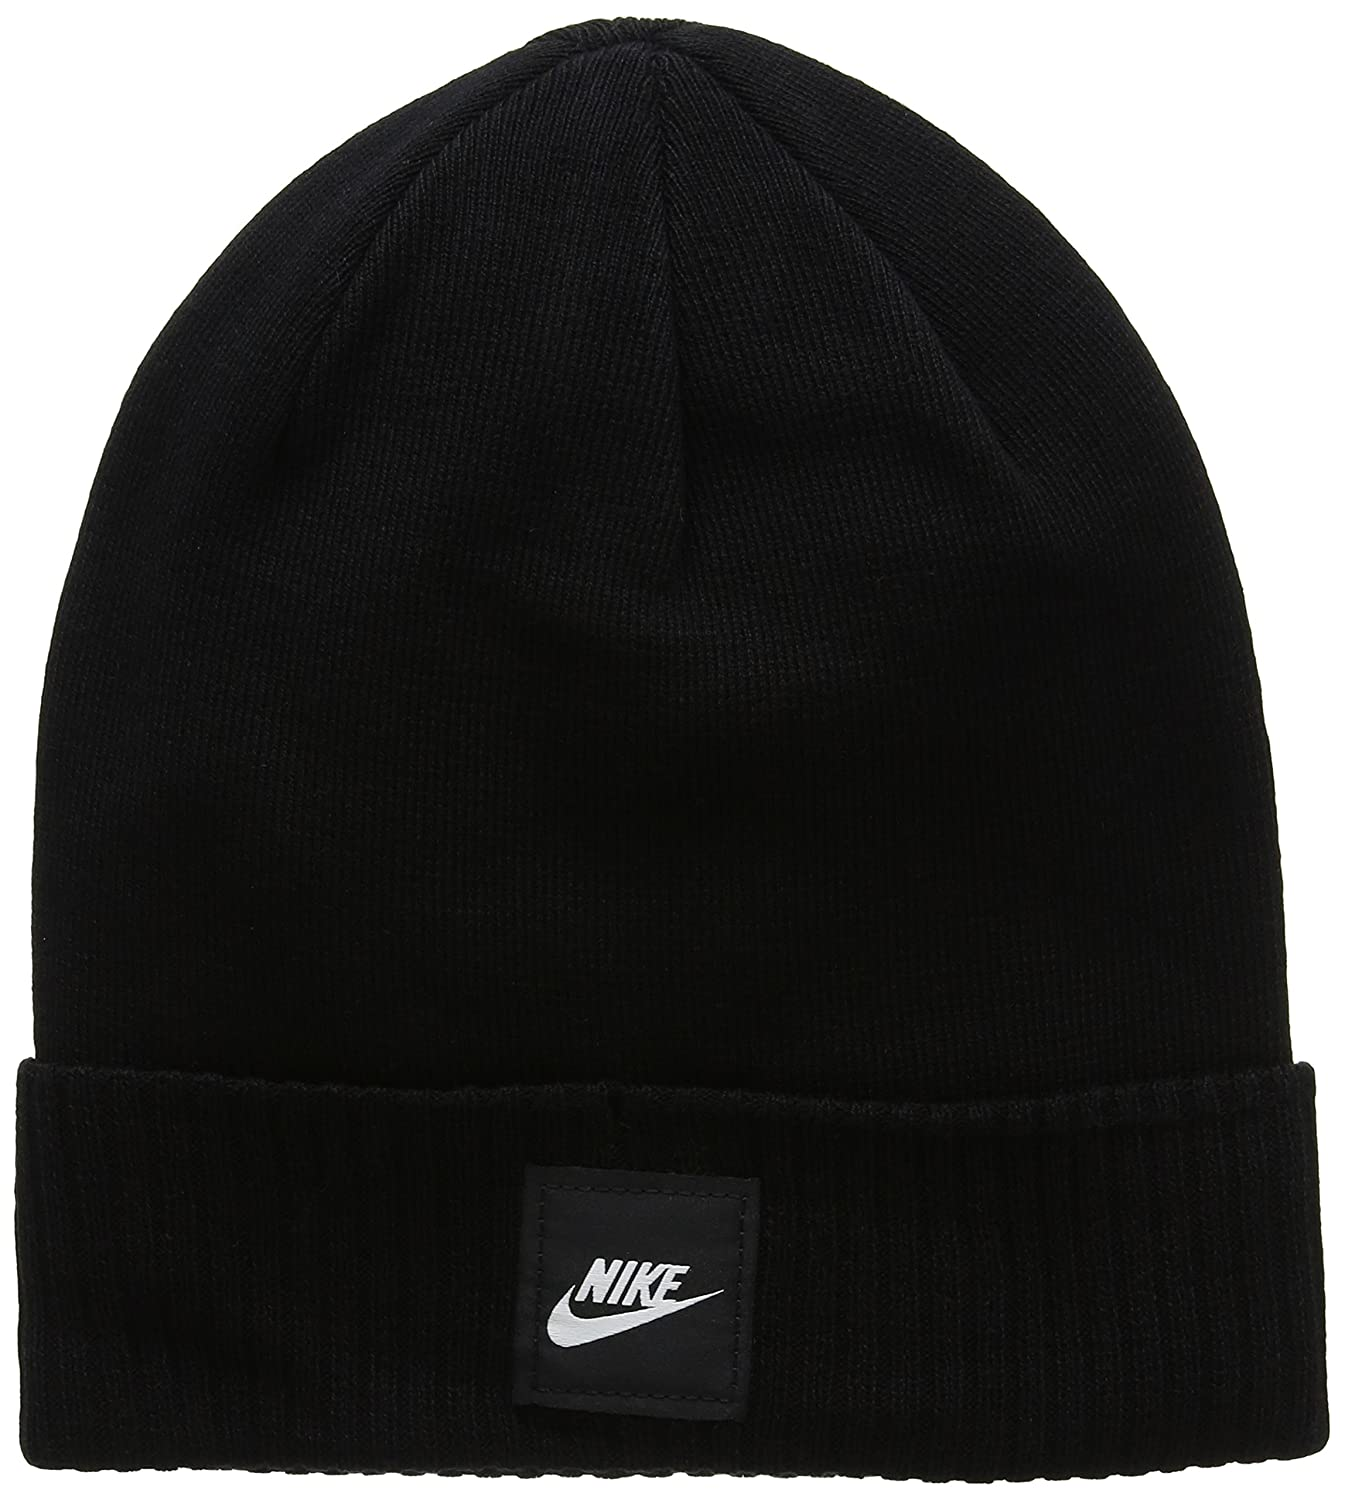 Amazon.com  Nike Futura Knit Hat Black Size One Size  NIKE  Sports    Outdoors 8f2871182d5